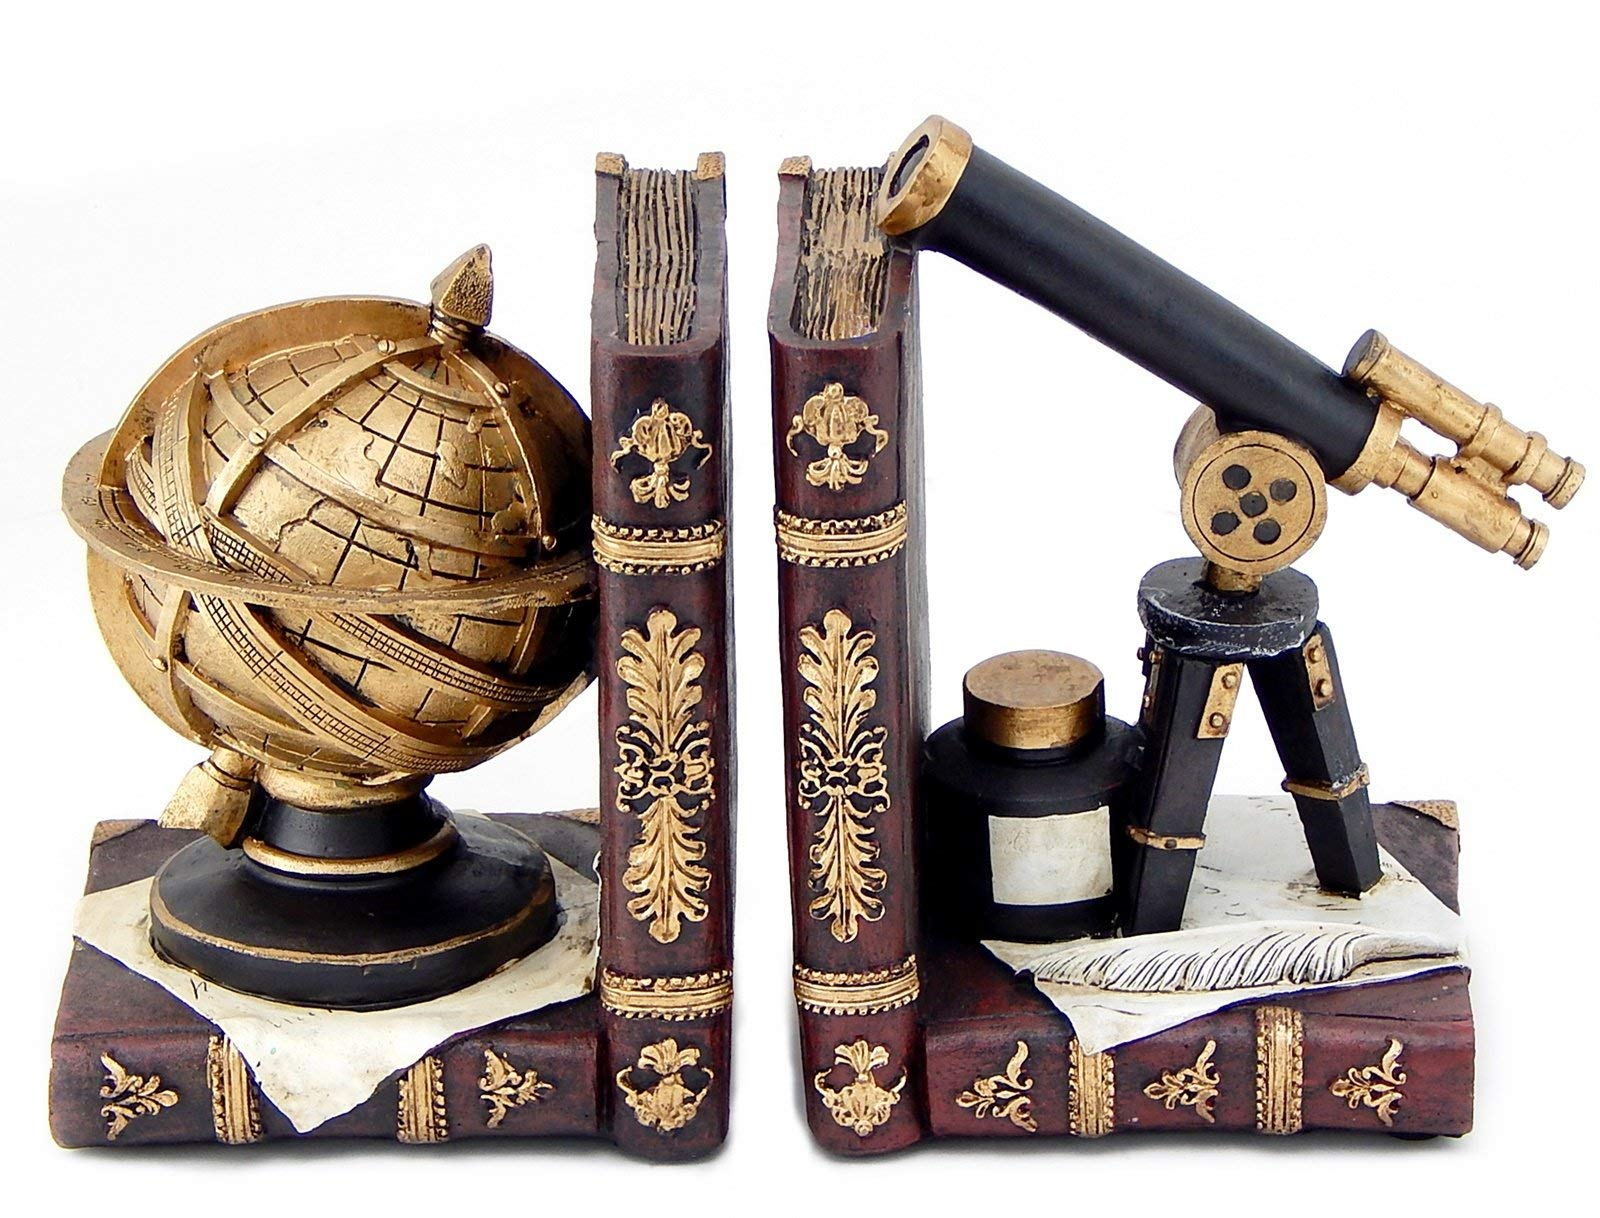 Bellaa 26355 Astronomy Bookends Galileo Space Time Book Decor 6 inch by Bellaa